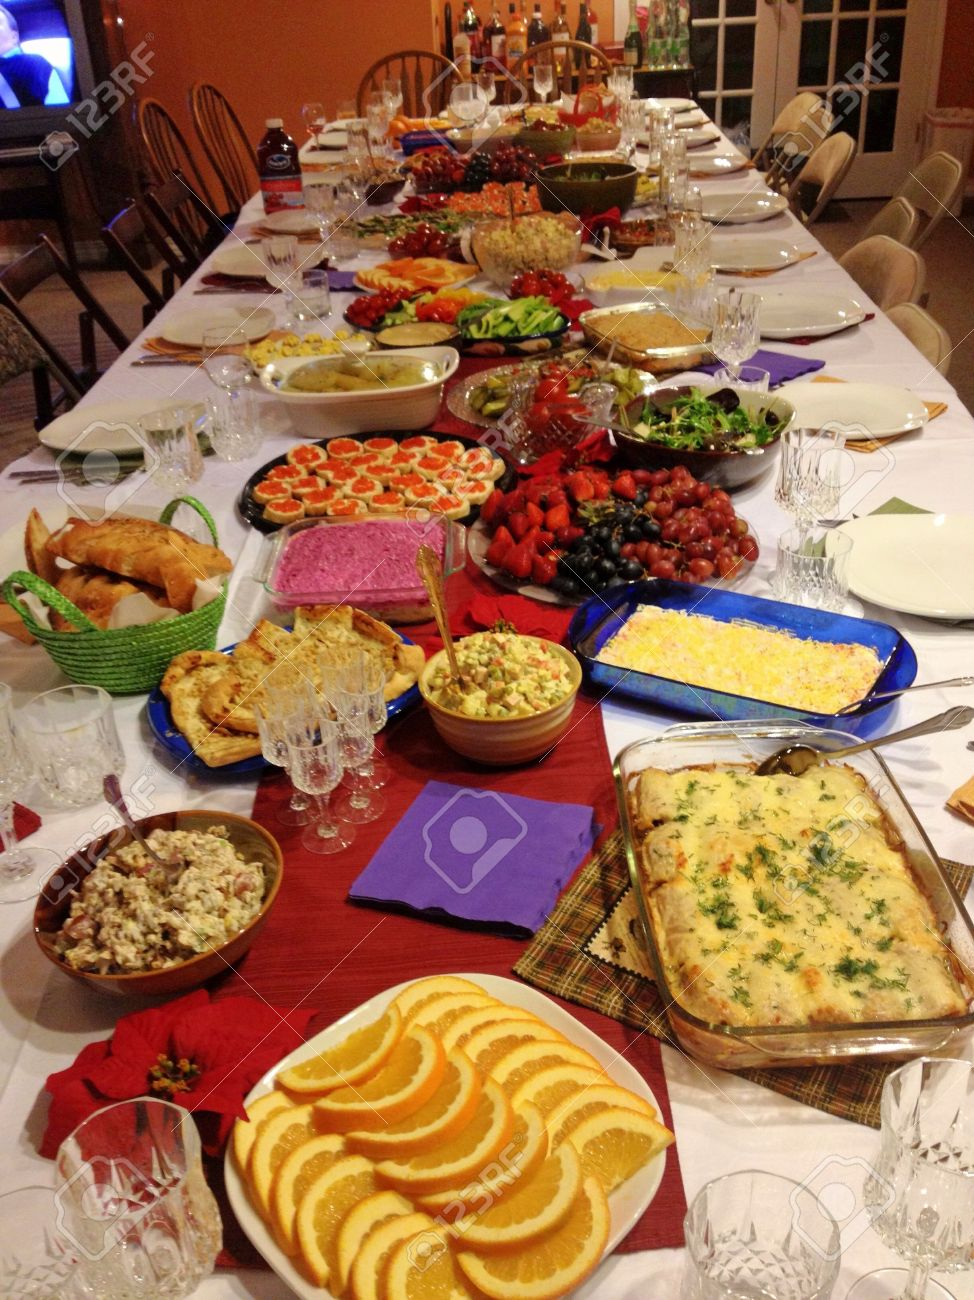 New Year Celebration With Traditional Russian Feast At Big Table. Stock  Photo, Picture And Royalty Free Image. Image 24885523.